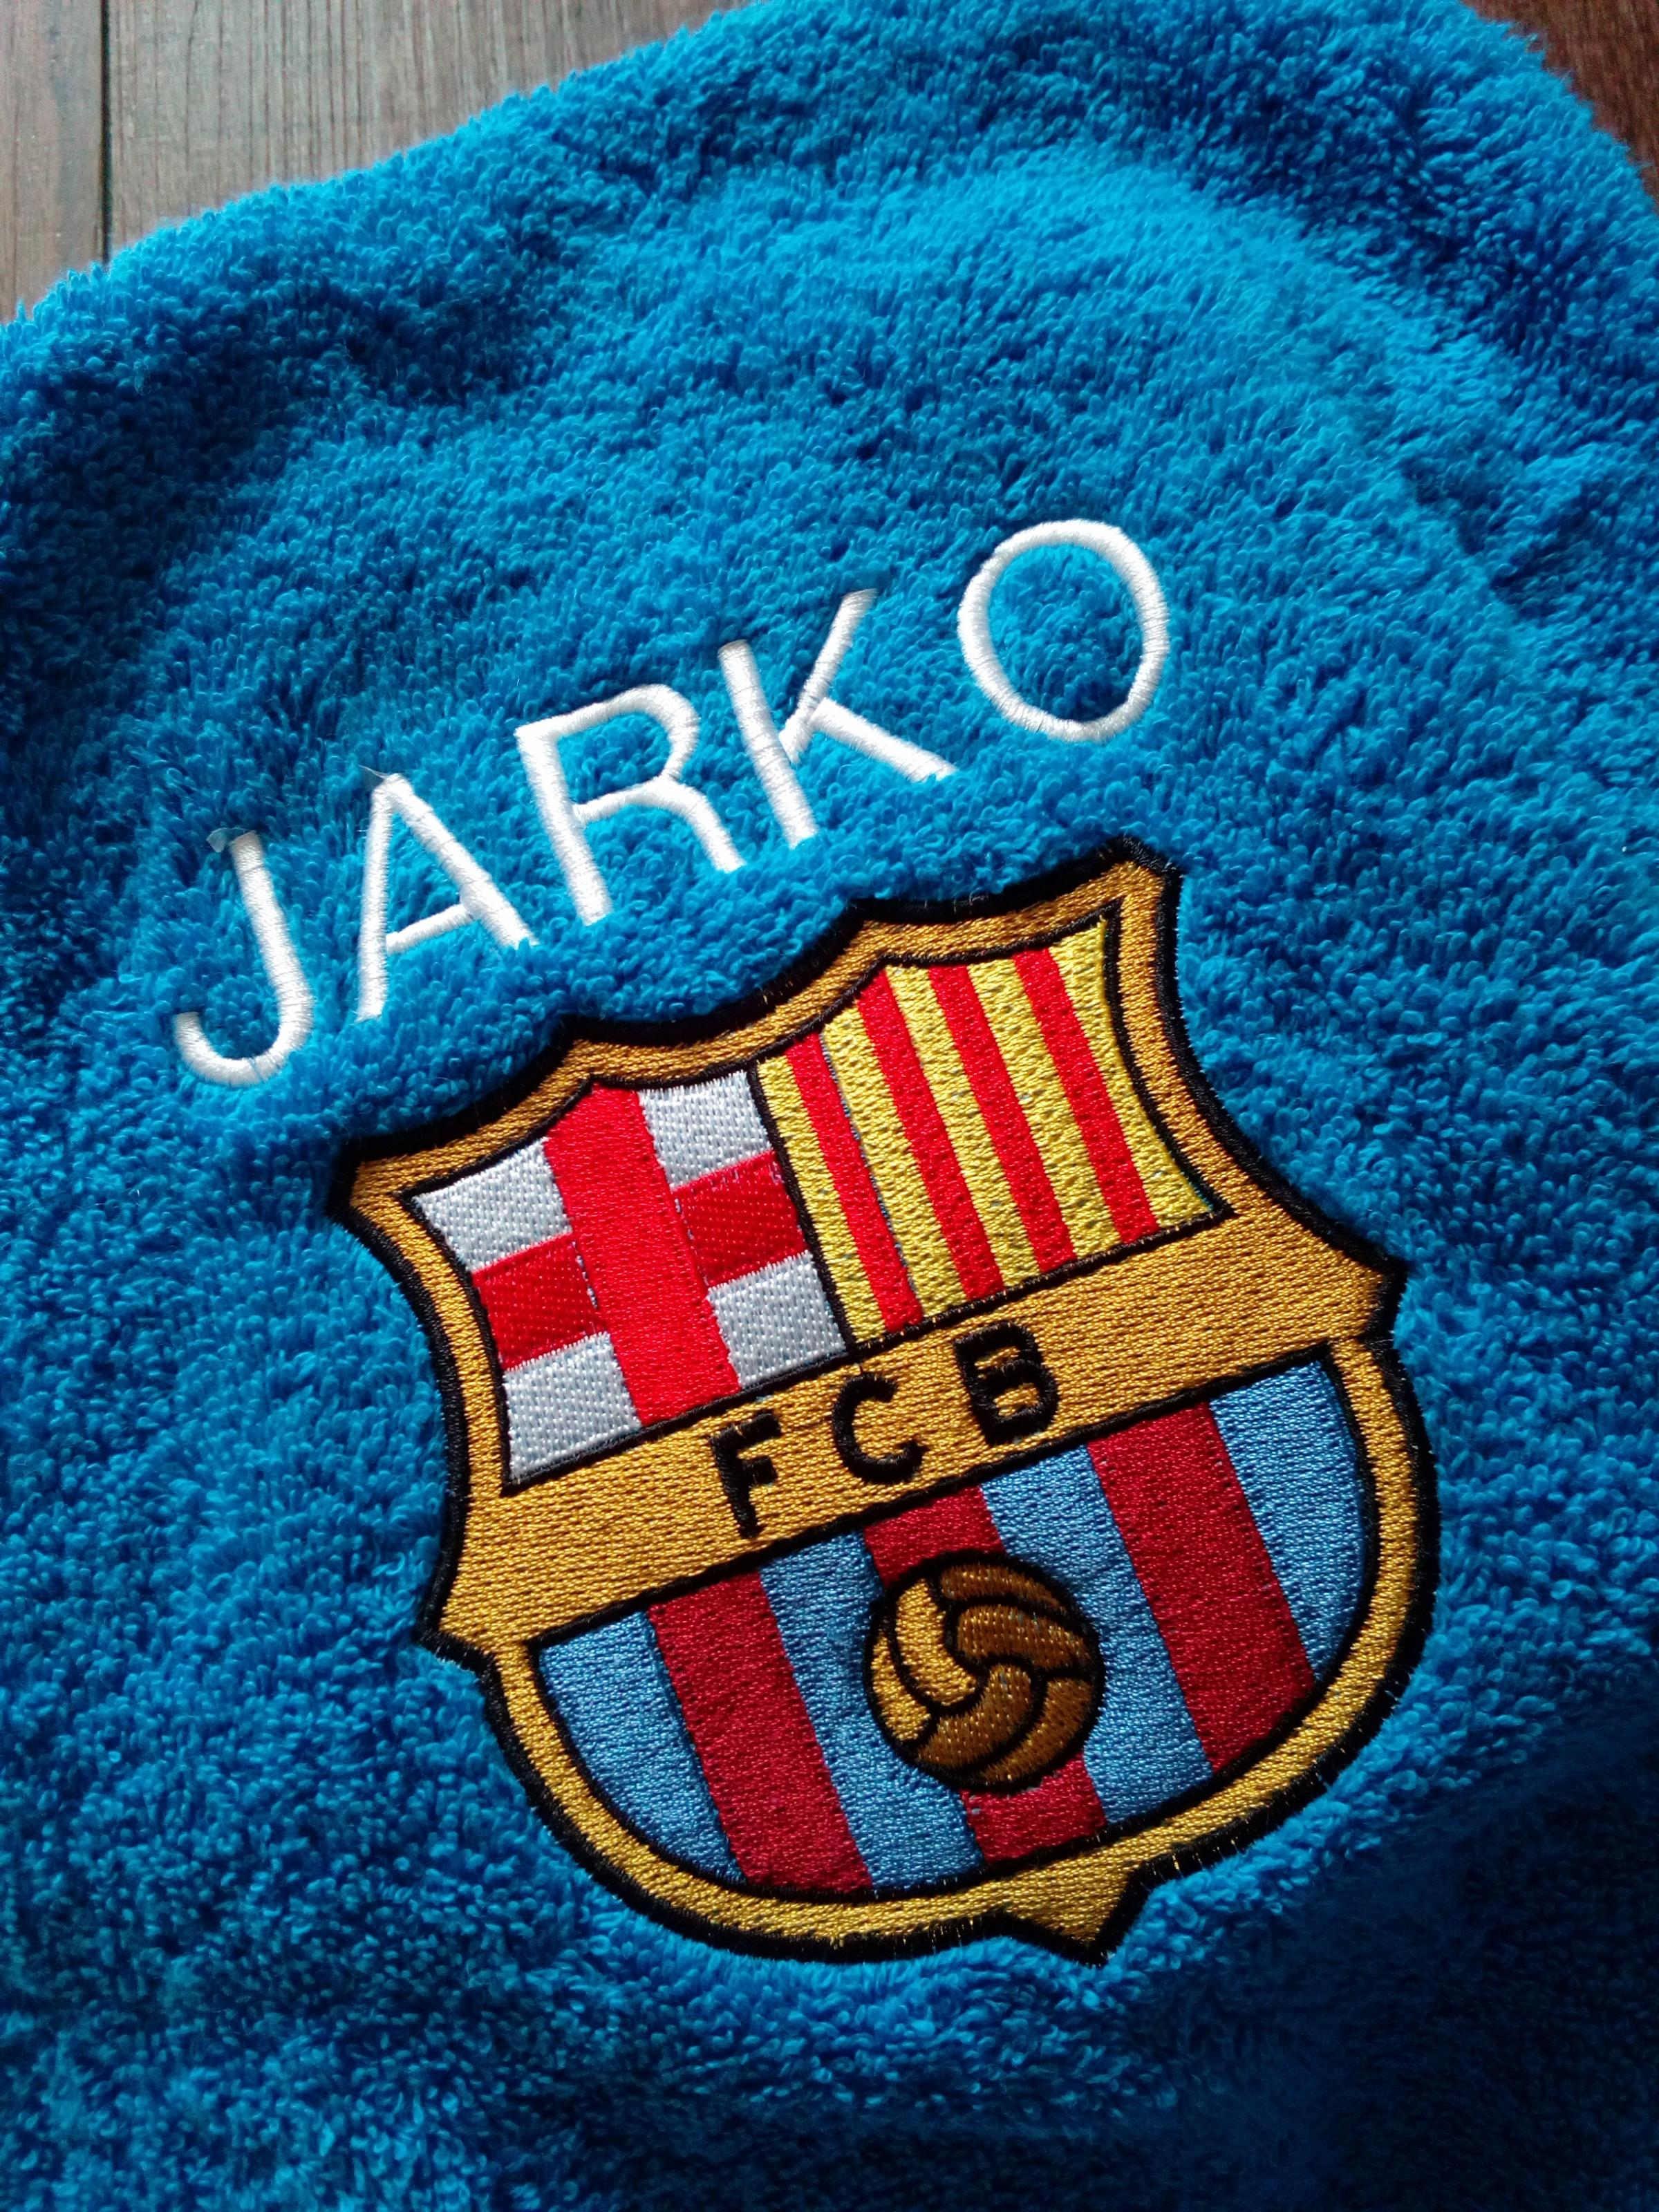 Embroidered towel with Barcelona FC logo